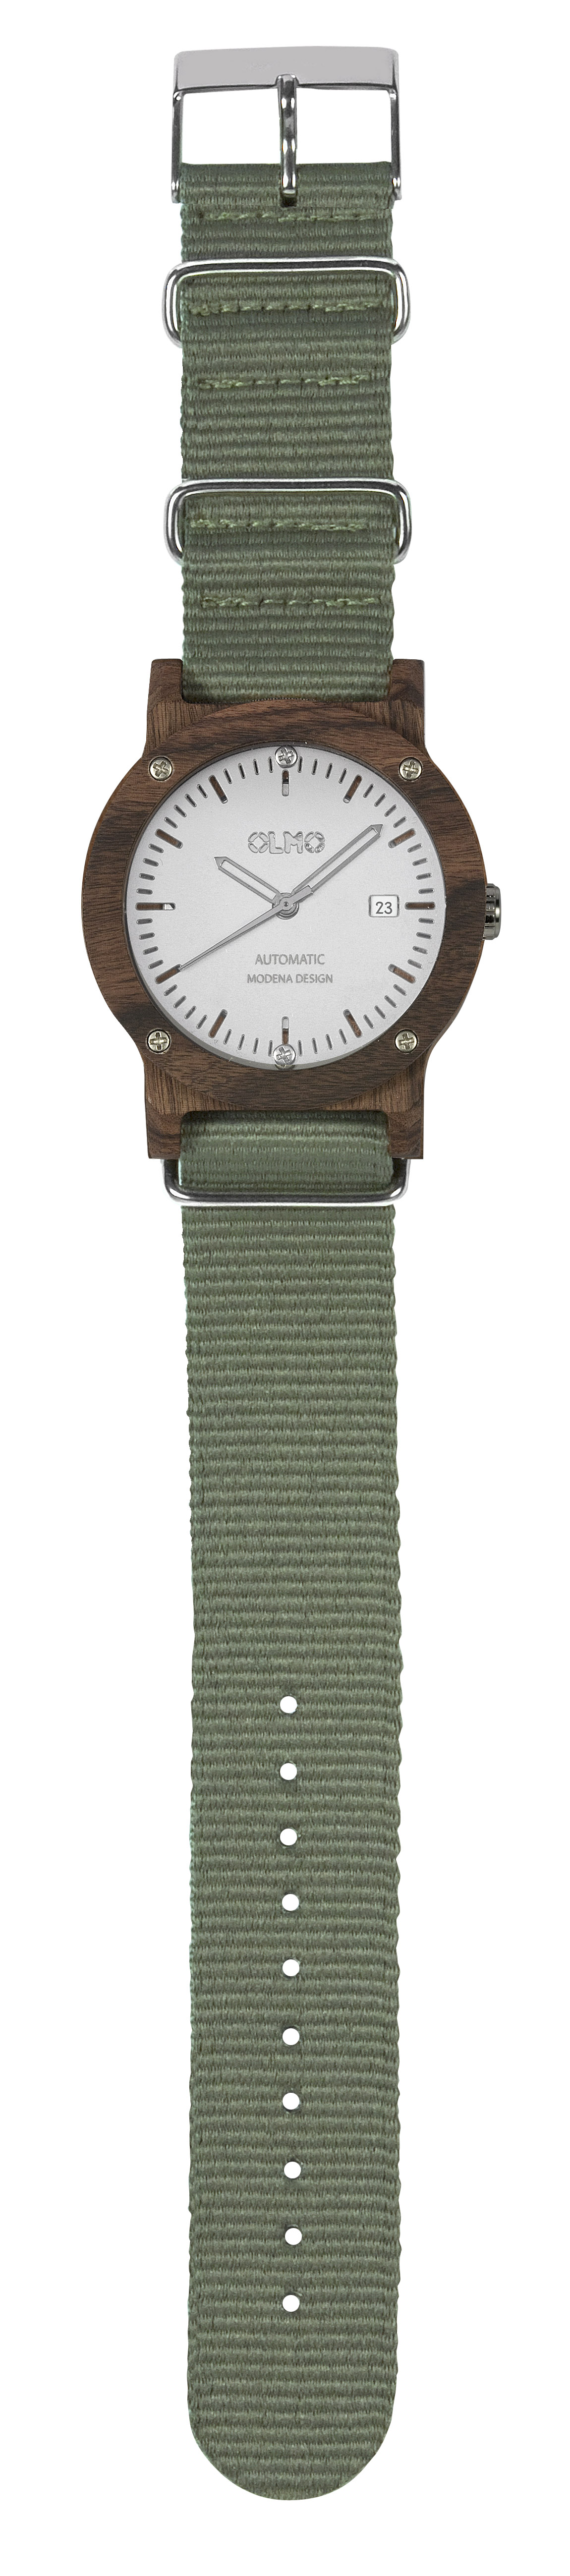 OLMO watch in rosewood, green strap